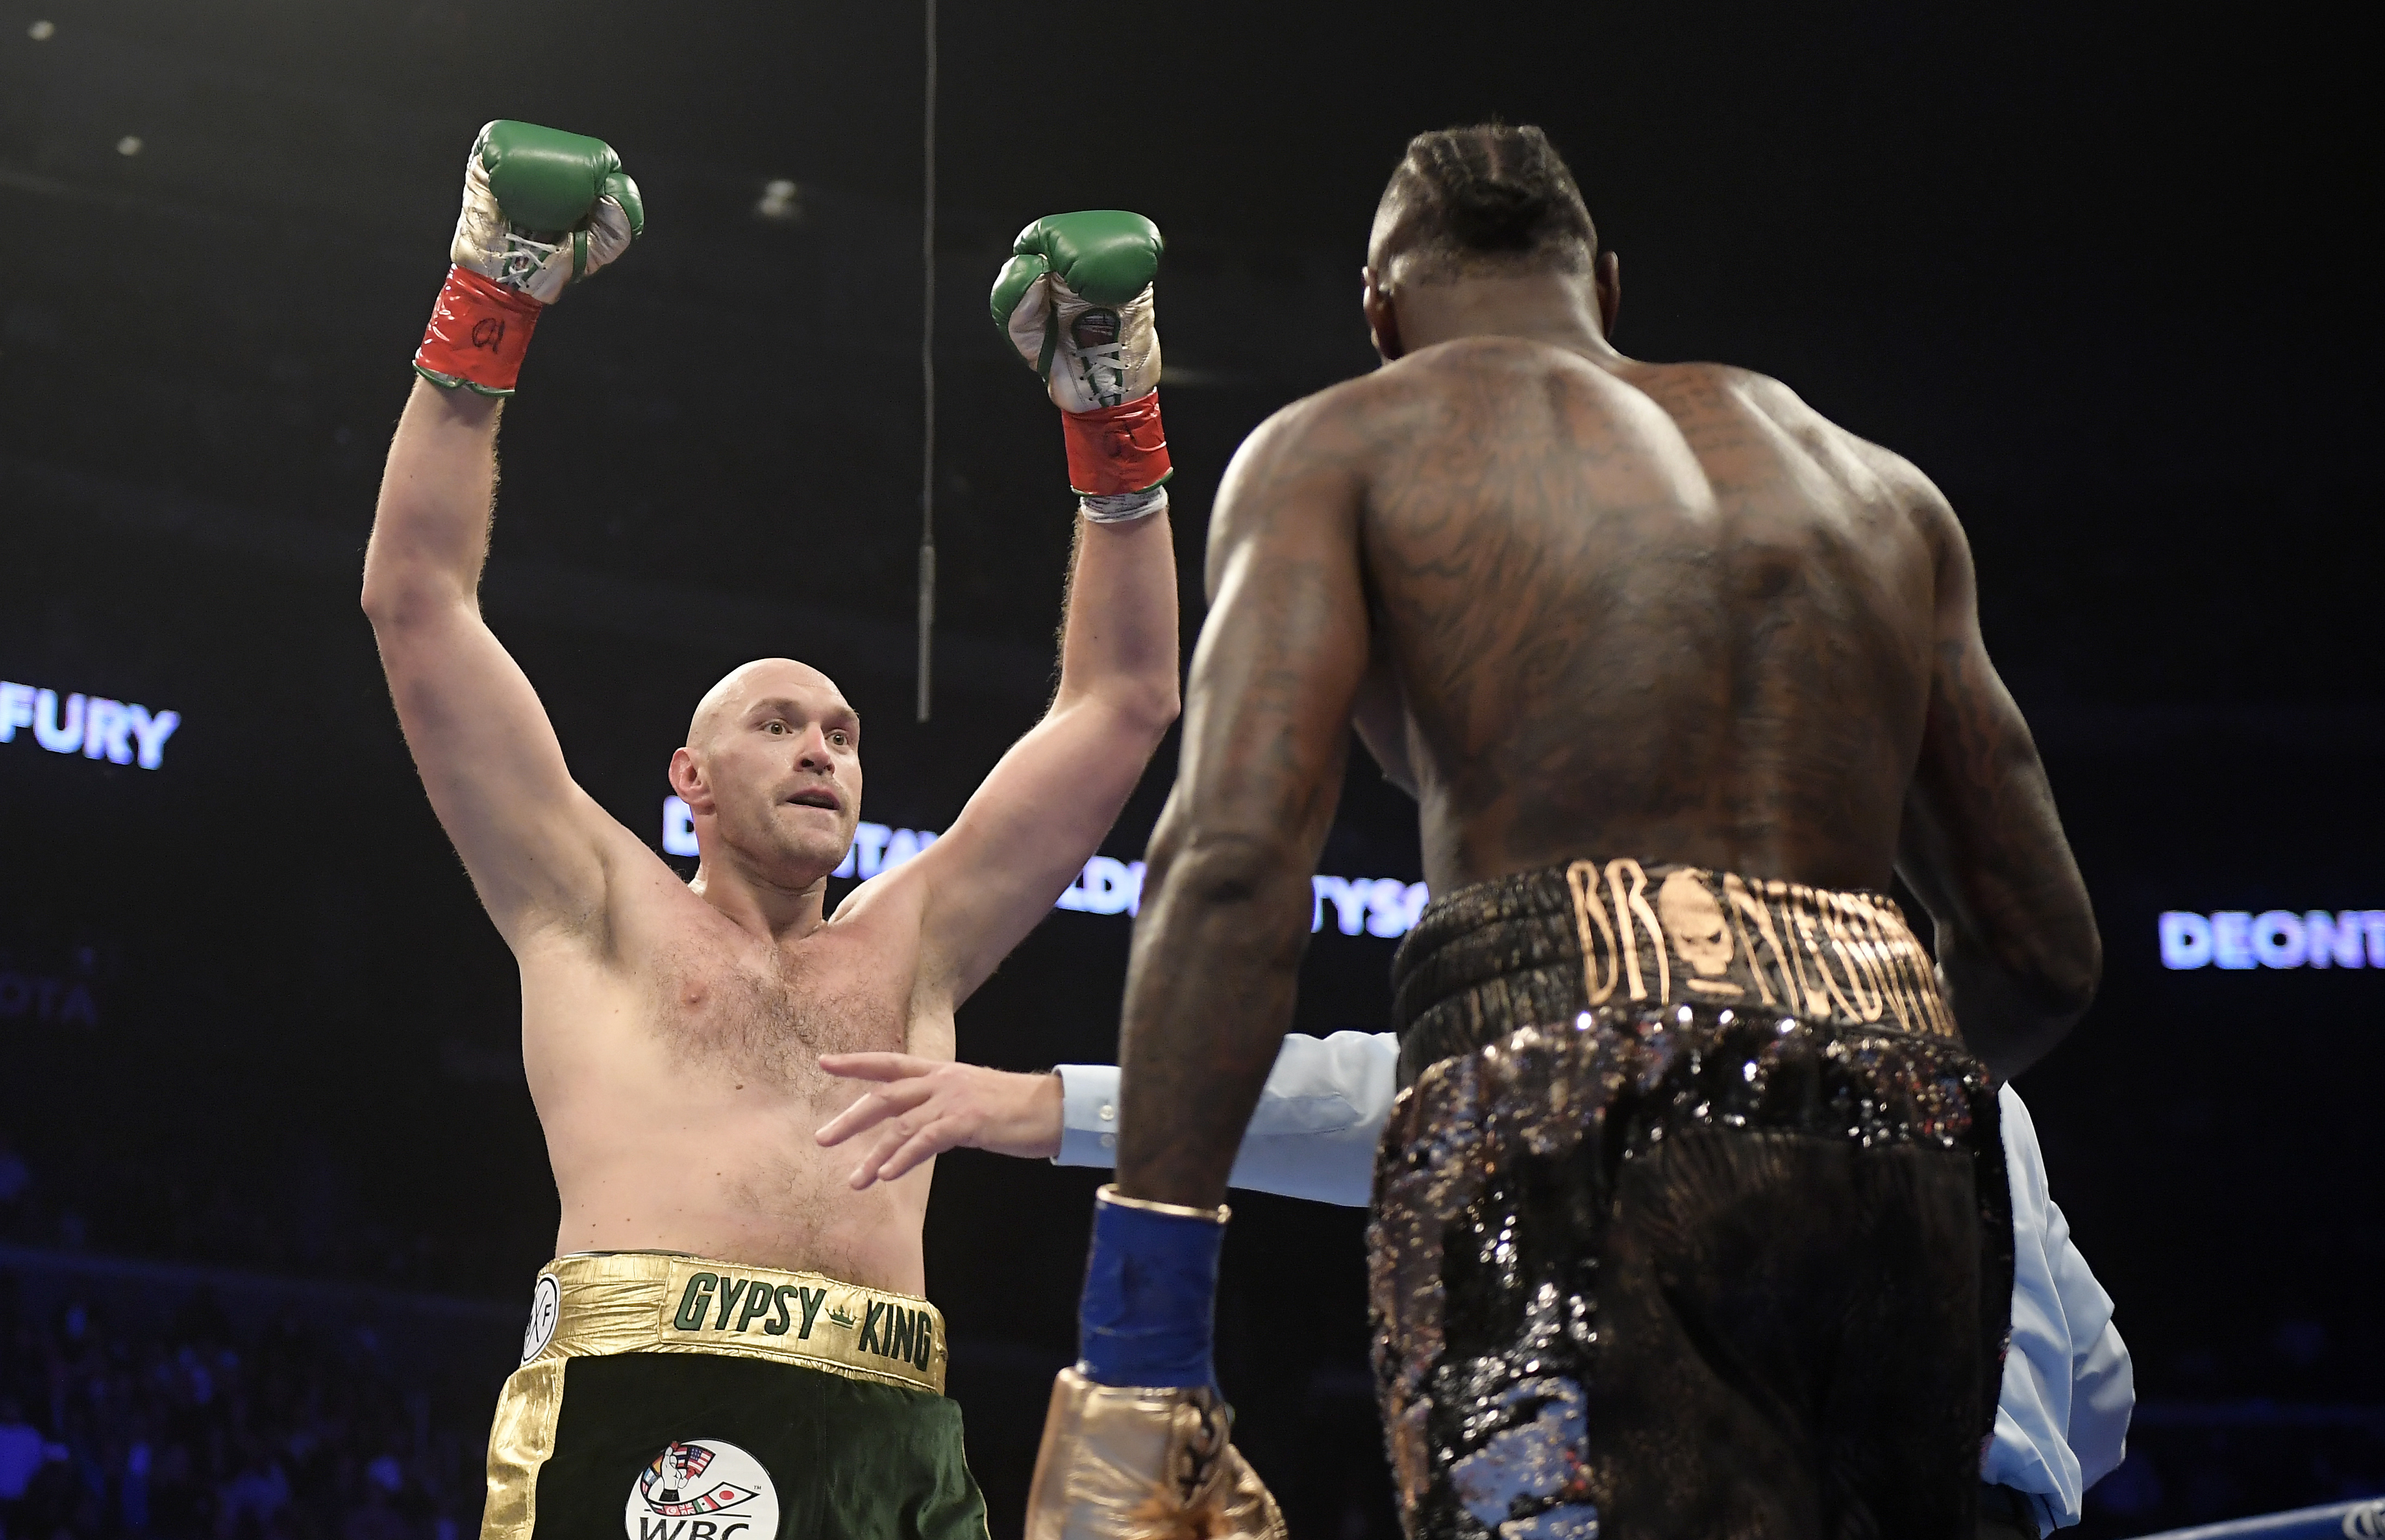 Fury thought he'd won the fight, as did most people. Image: PA Images